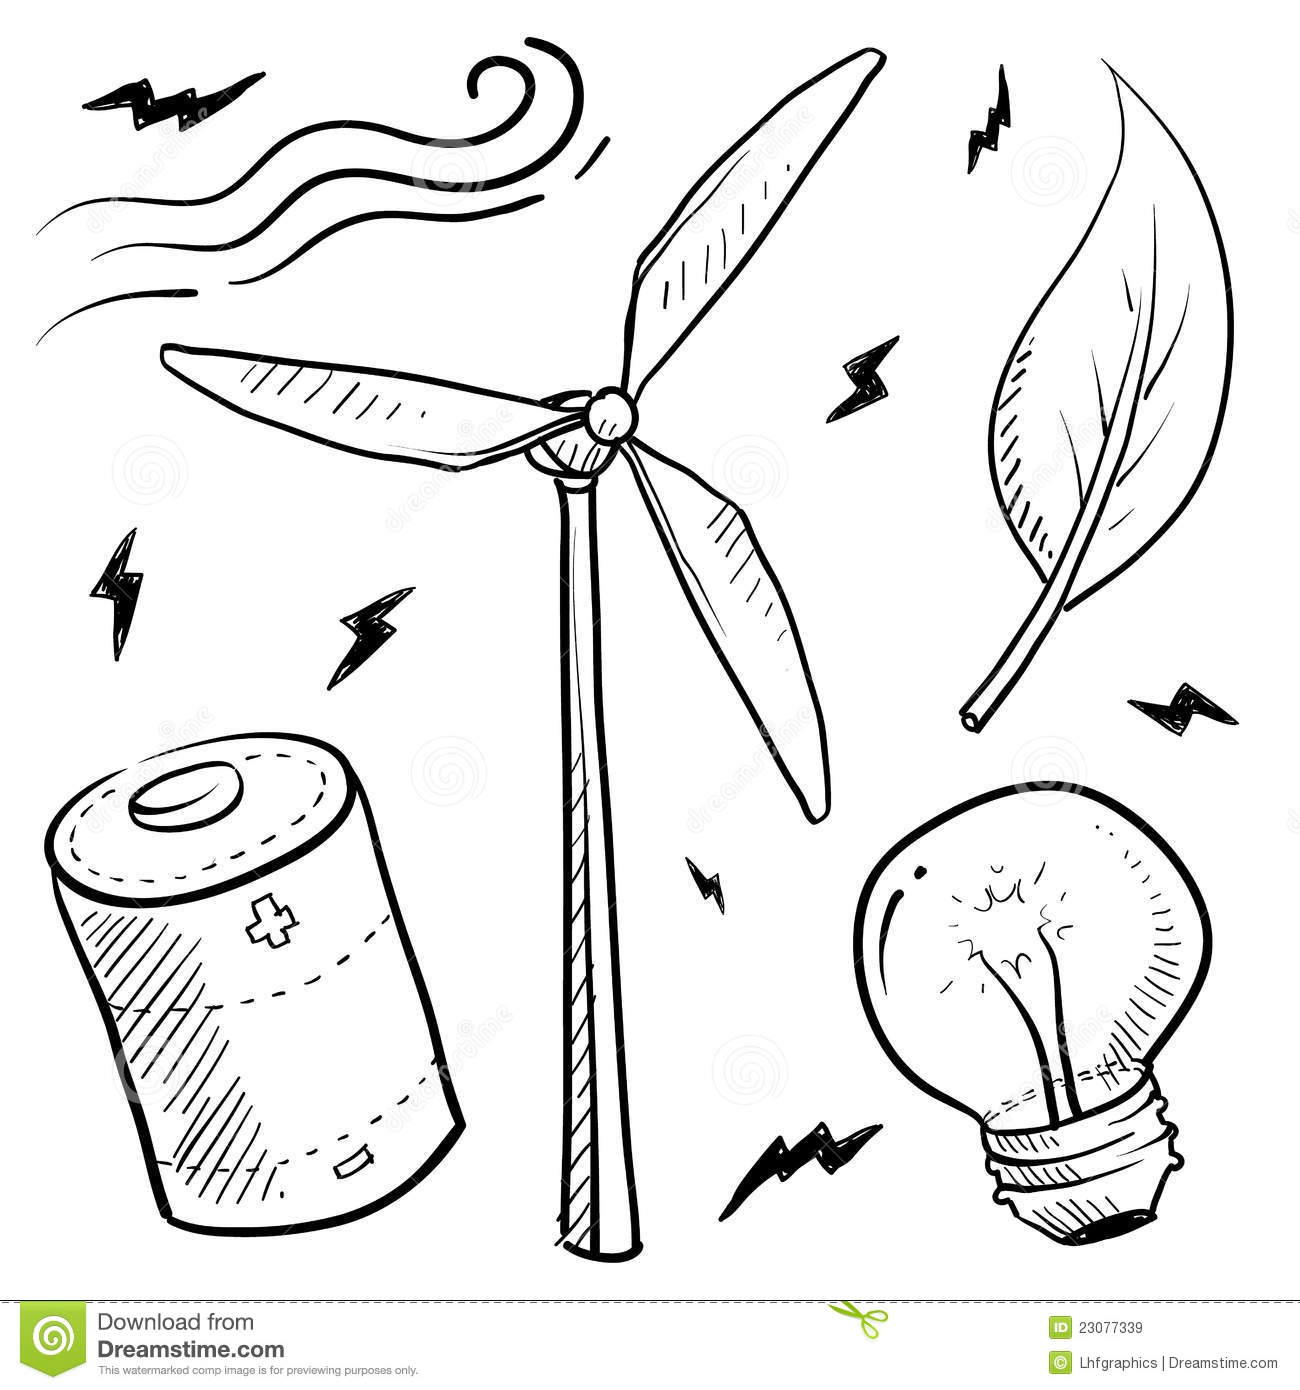 Wind Energy Objects Sketch Royalty Free Stock Images